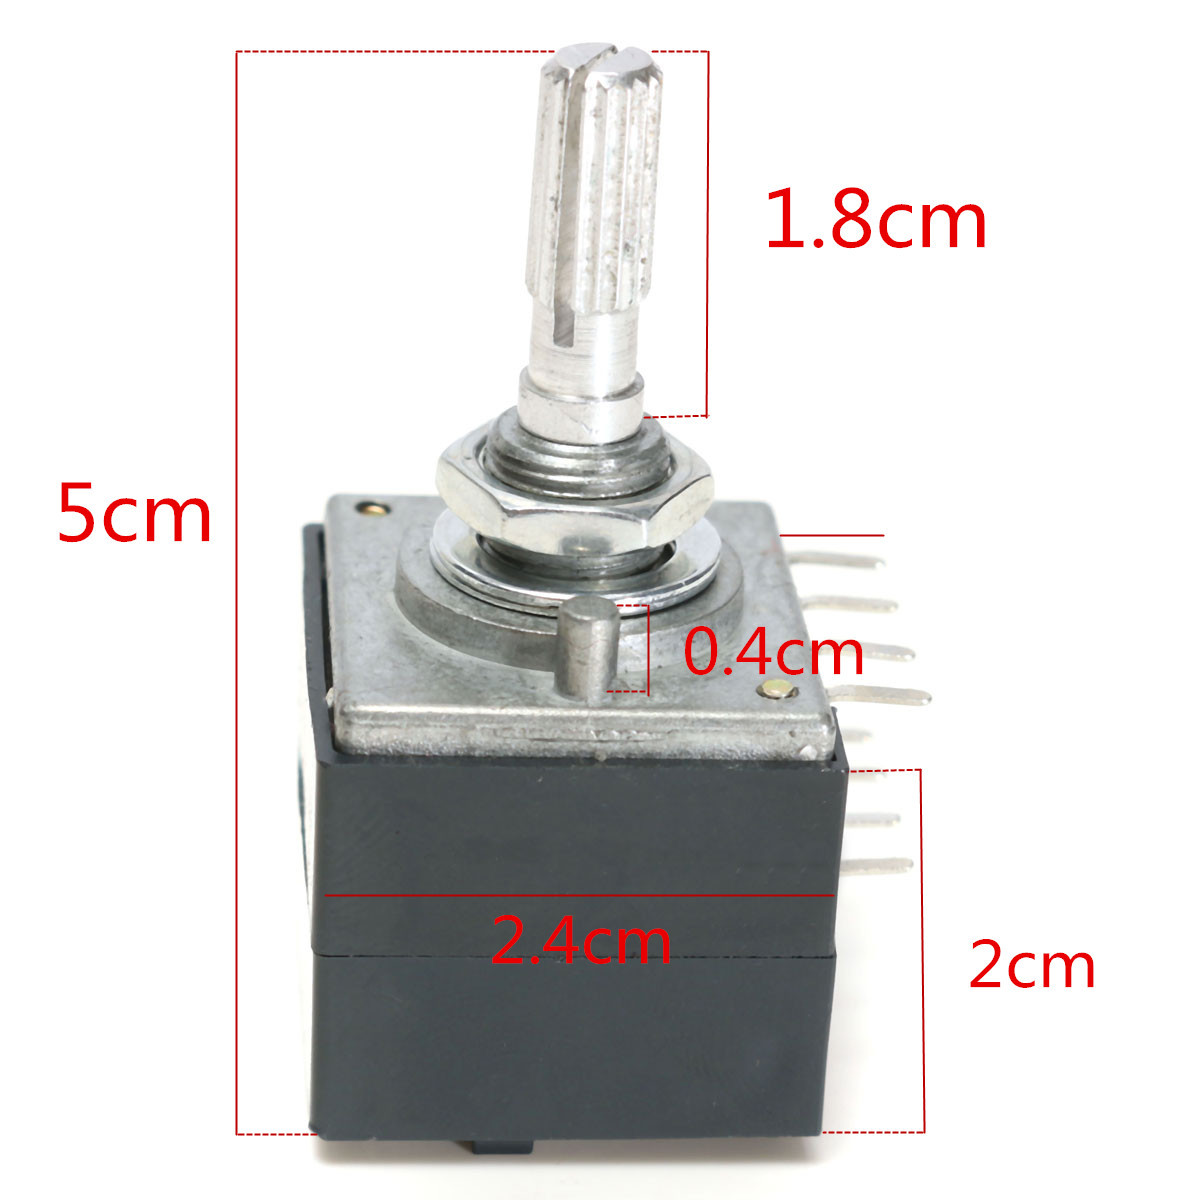 Potentiometer 100k Log Audio Amp Volume Control Pot Stereo W Loudness For Alsp New Arrival High Quality Potentiometers In From Electronic